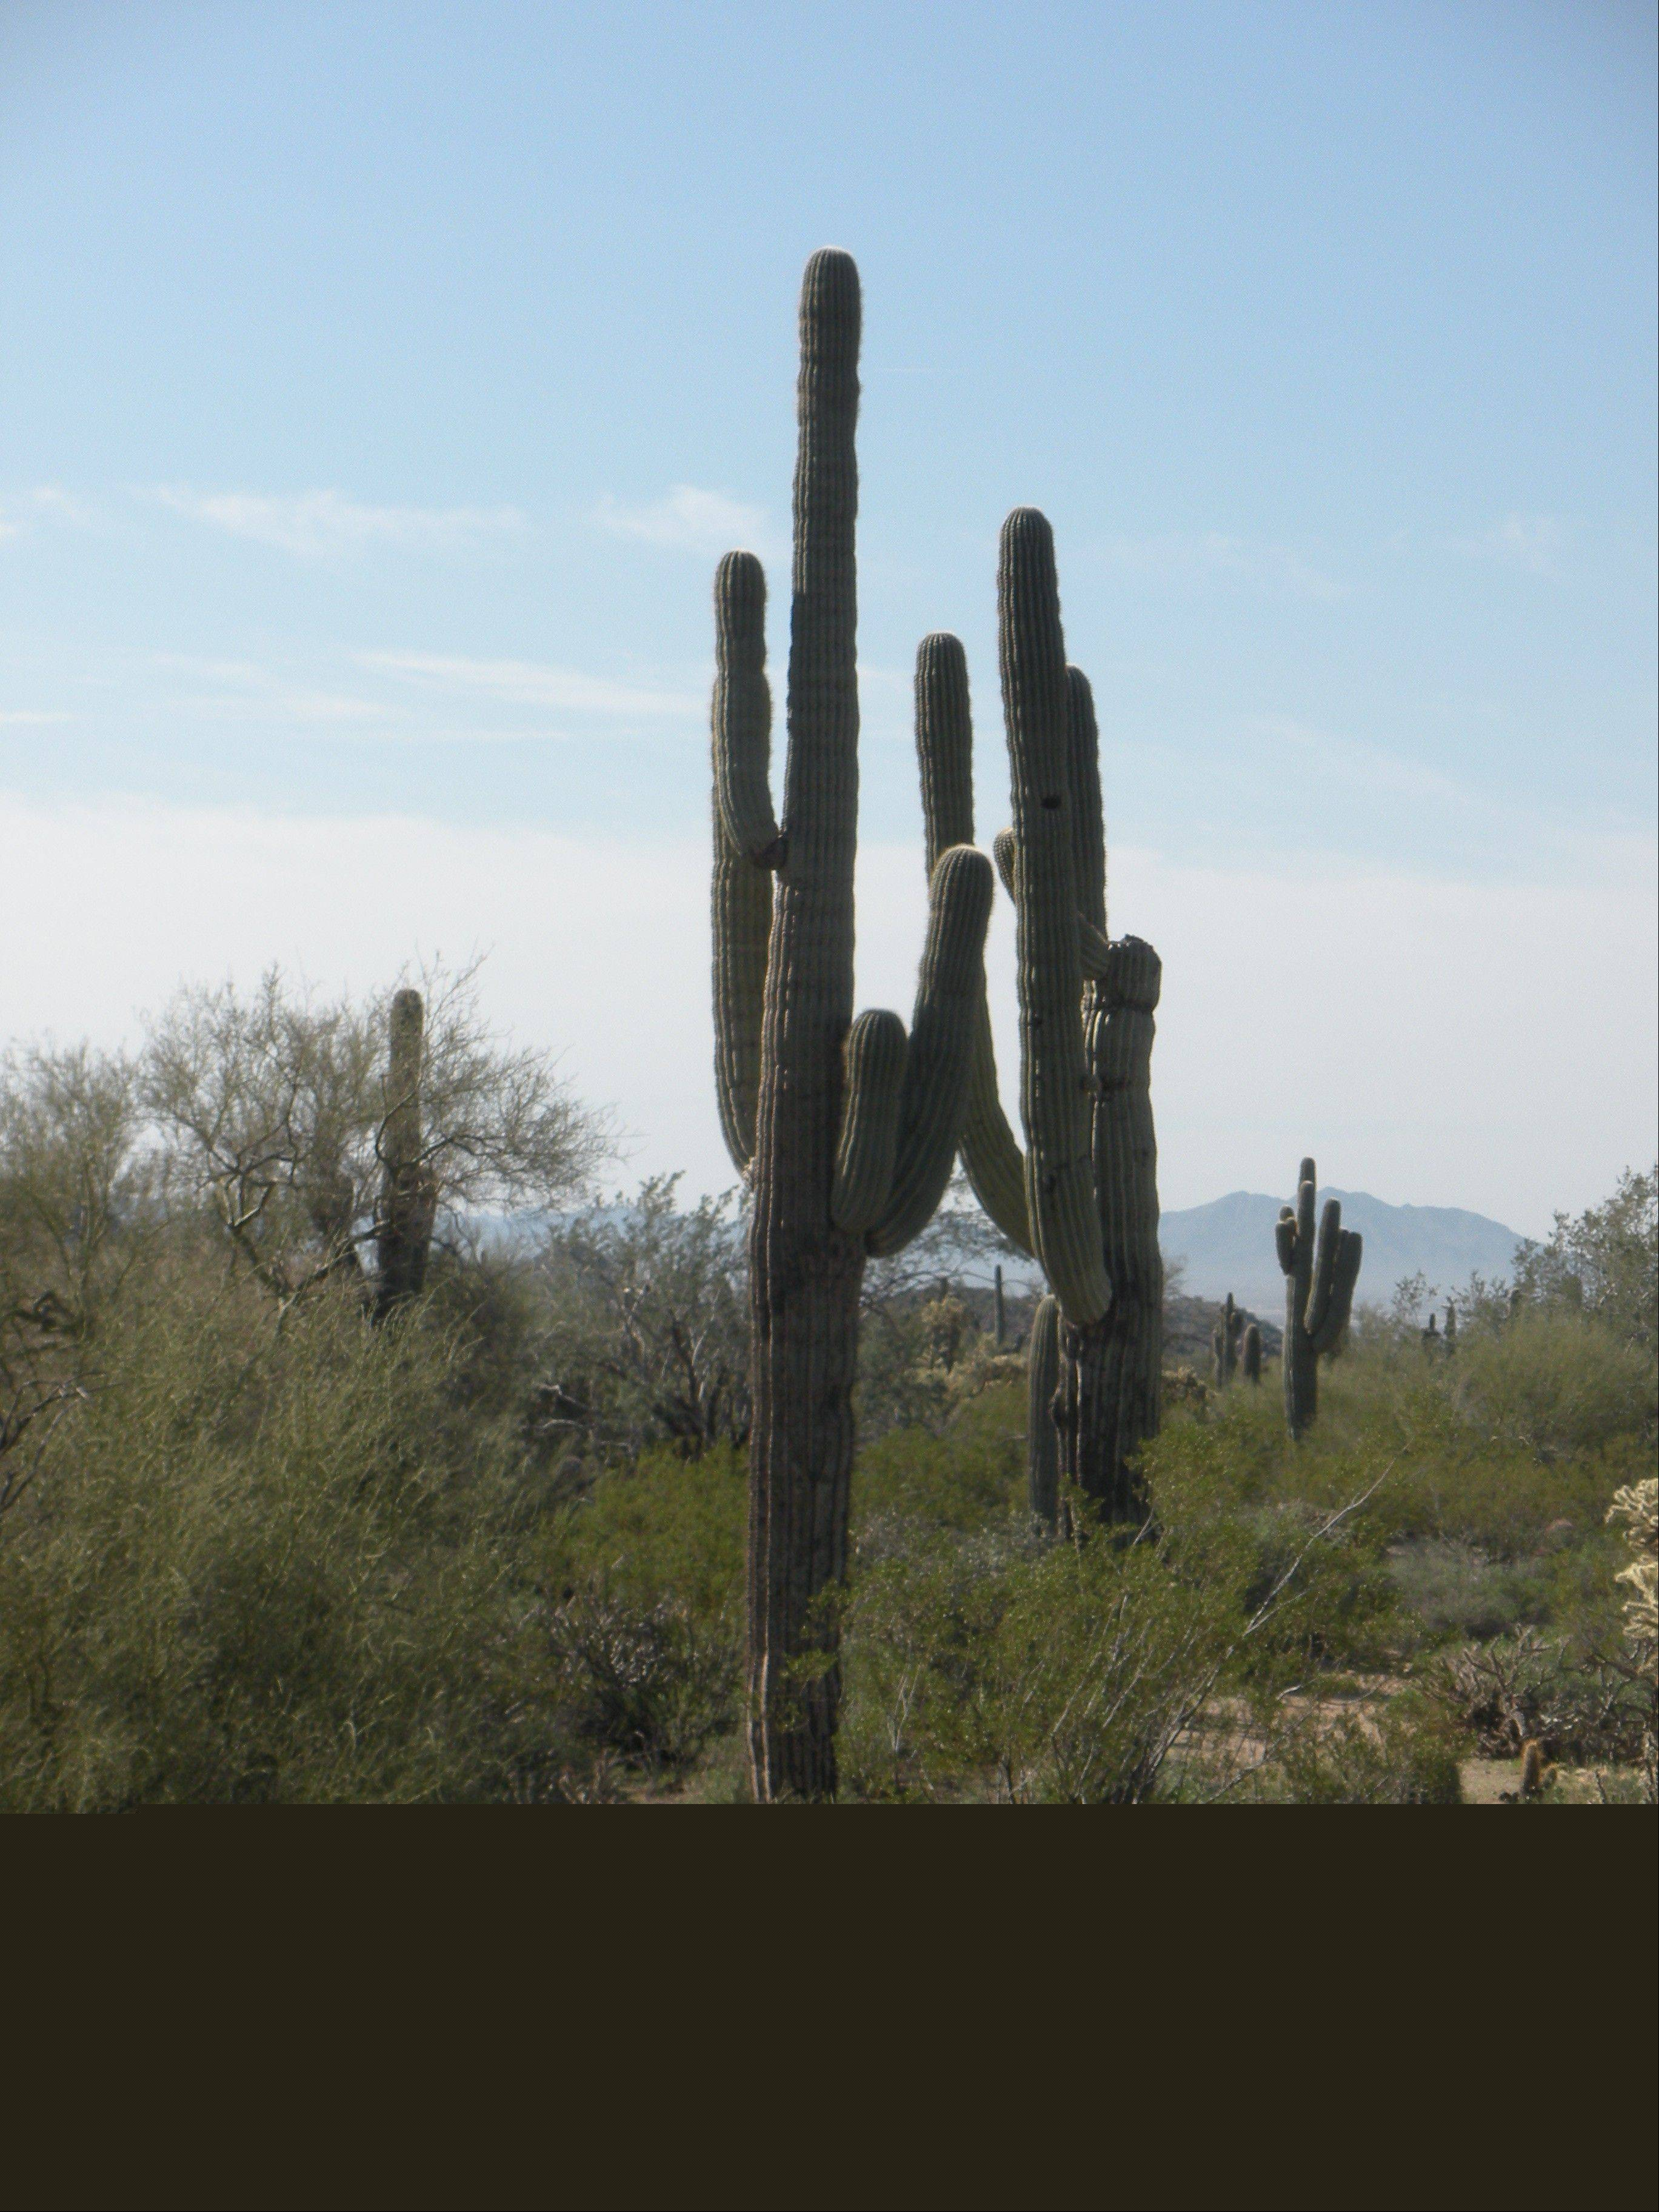 The statuesque saguaro cactus is the symbol of the Mesa region.